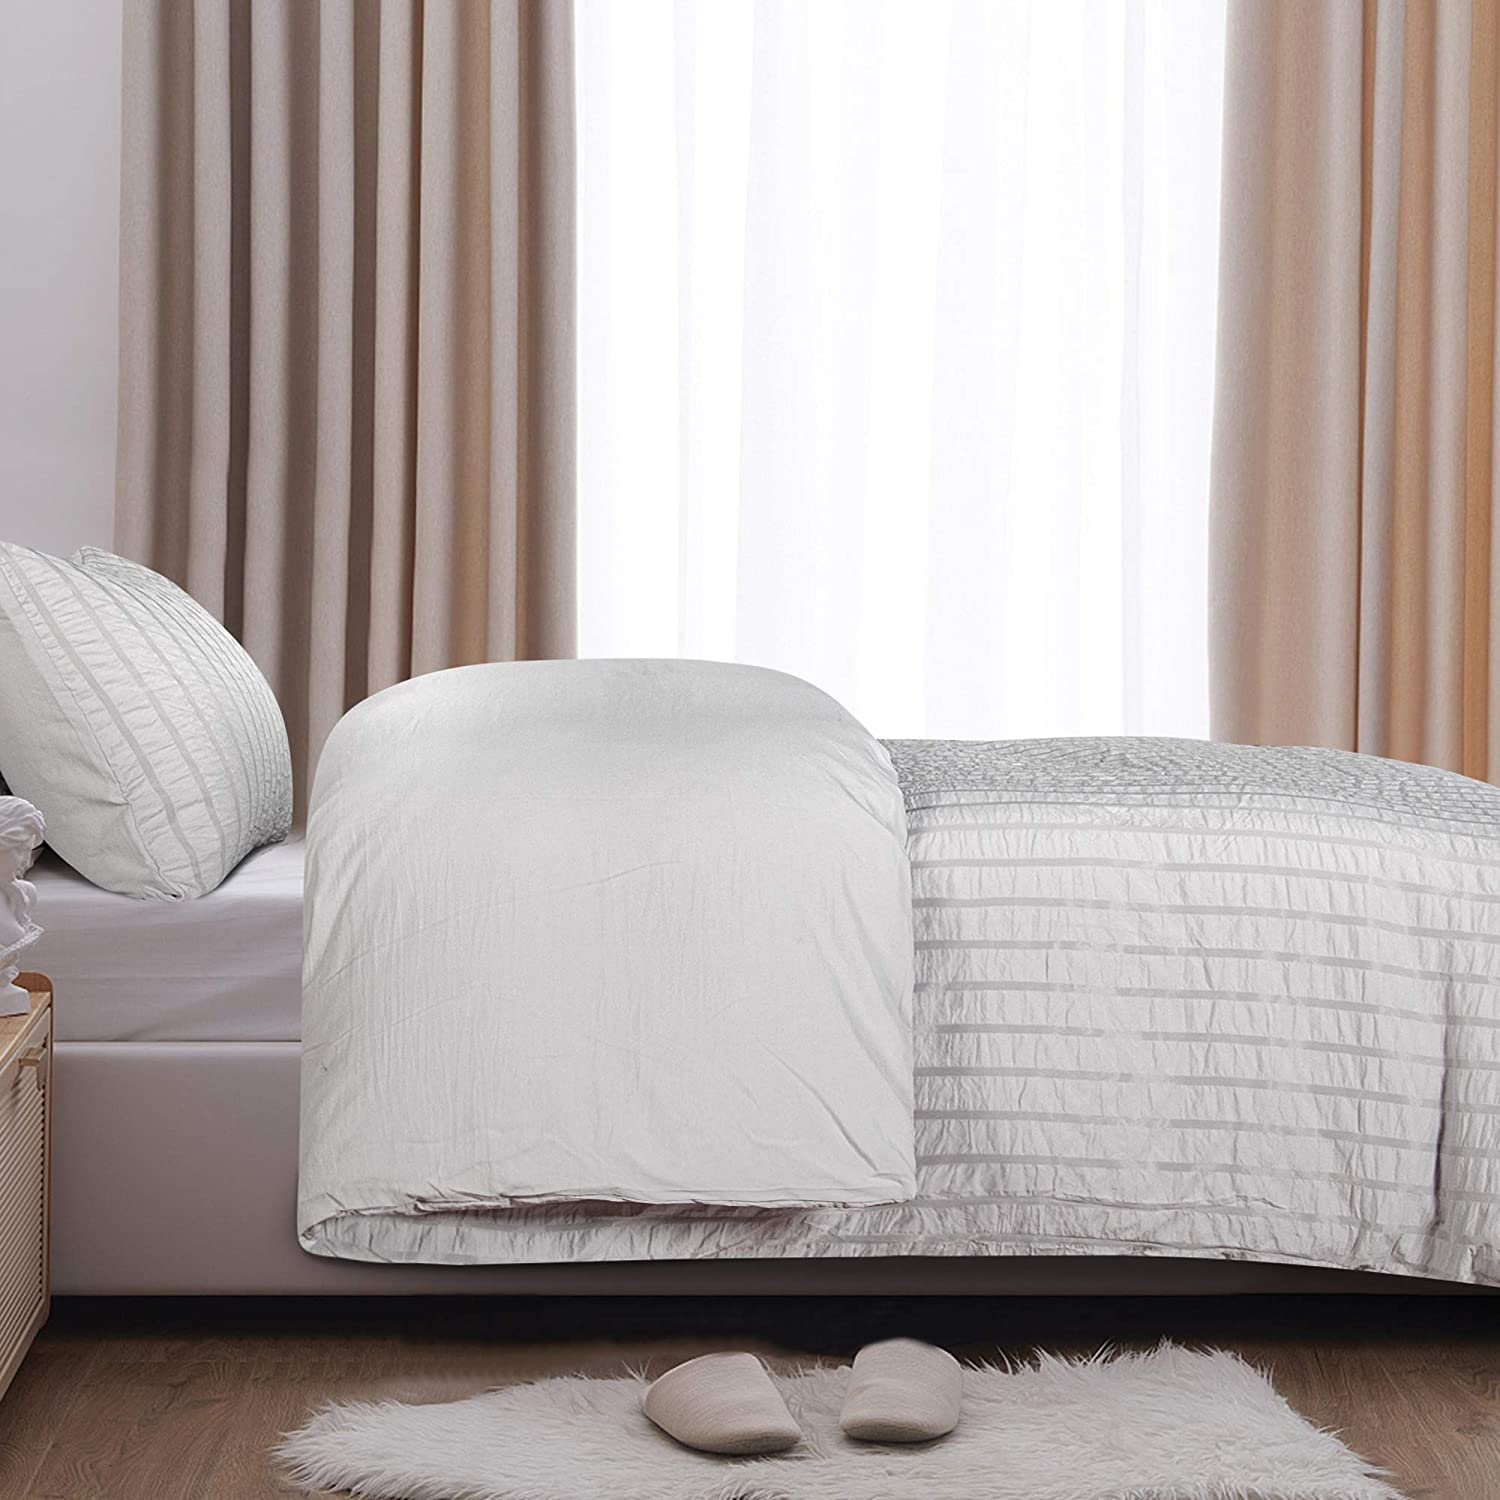 68x90 Inches Light Grey 1 Duvet Cover + 1 Pillow Case Light Grey Stripe Washed Microfiber Comforter Cover with Zipper Closure for Kids 2 Pieces NTBAY Seersucker Twin Textured Duvet Cover Set